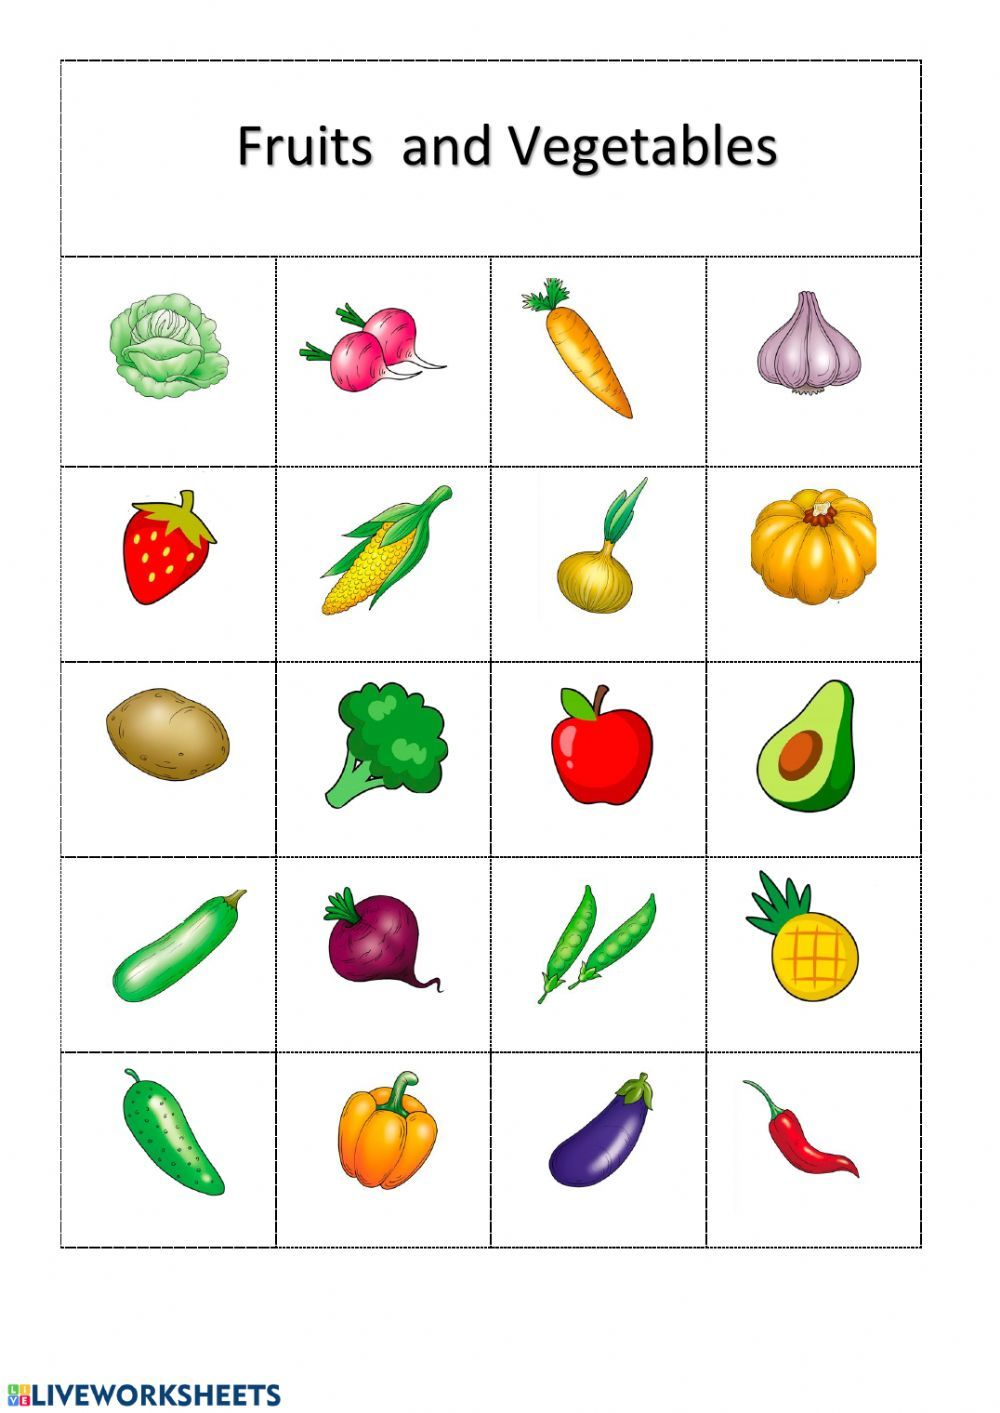 Fruits and Vegetables Interactive worksheet in 2019